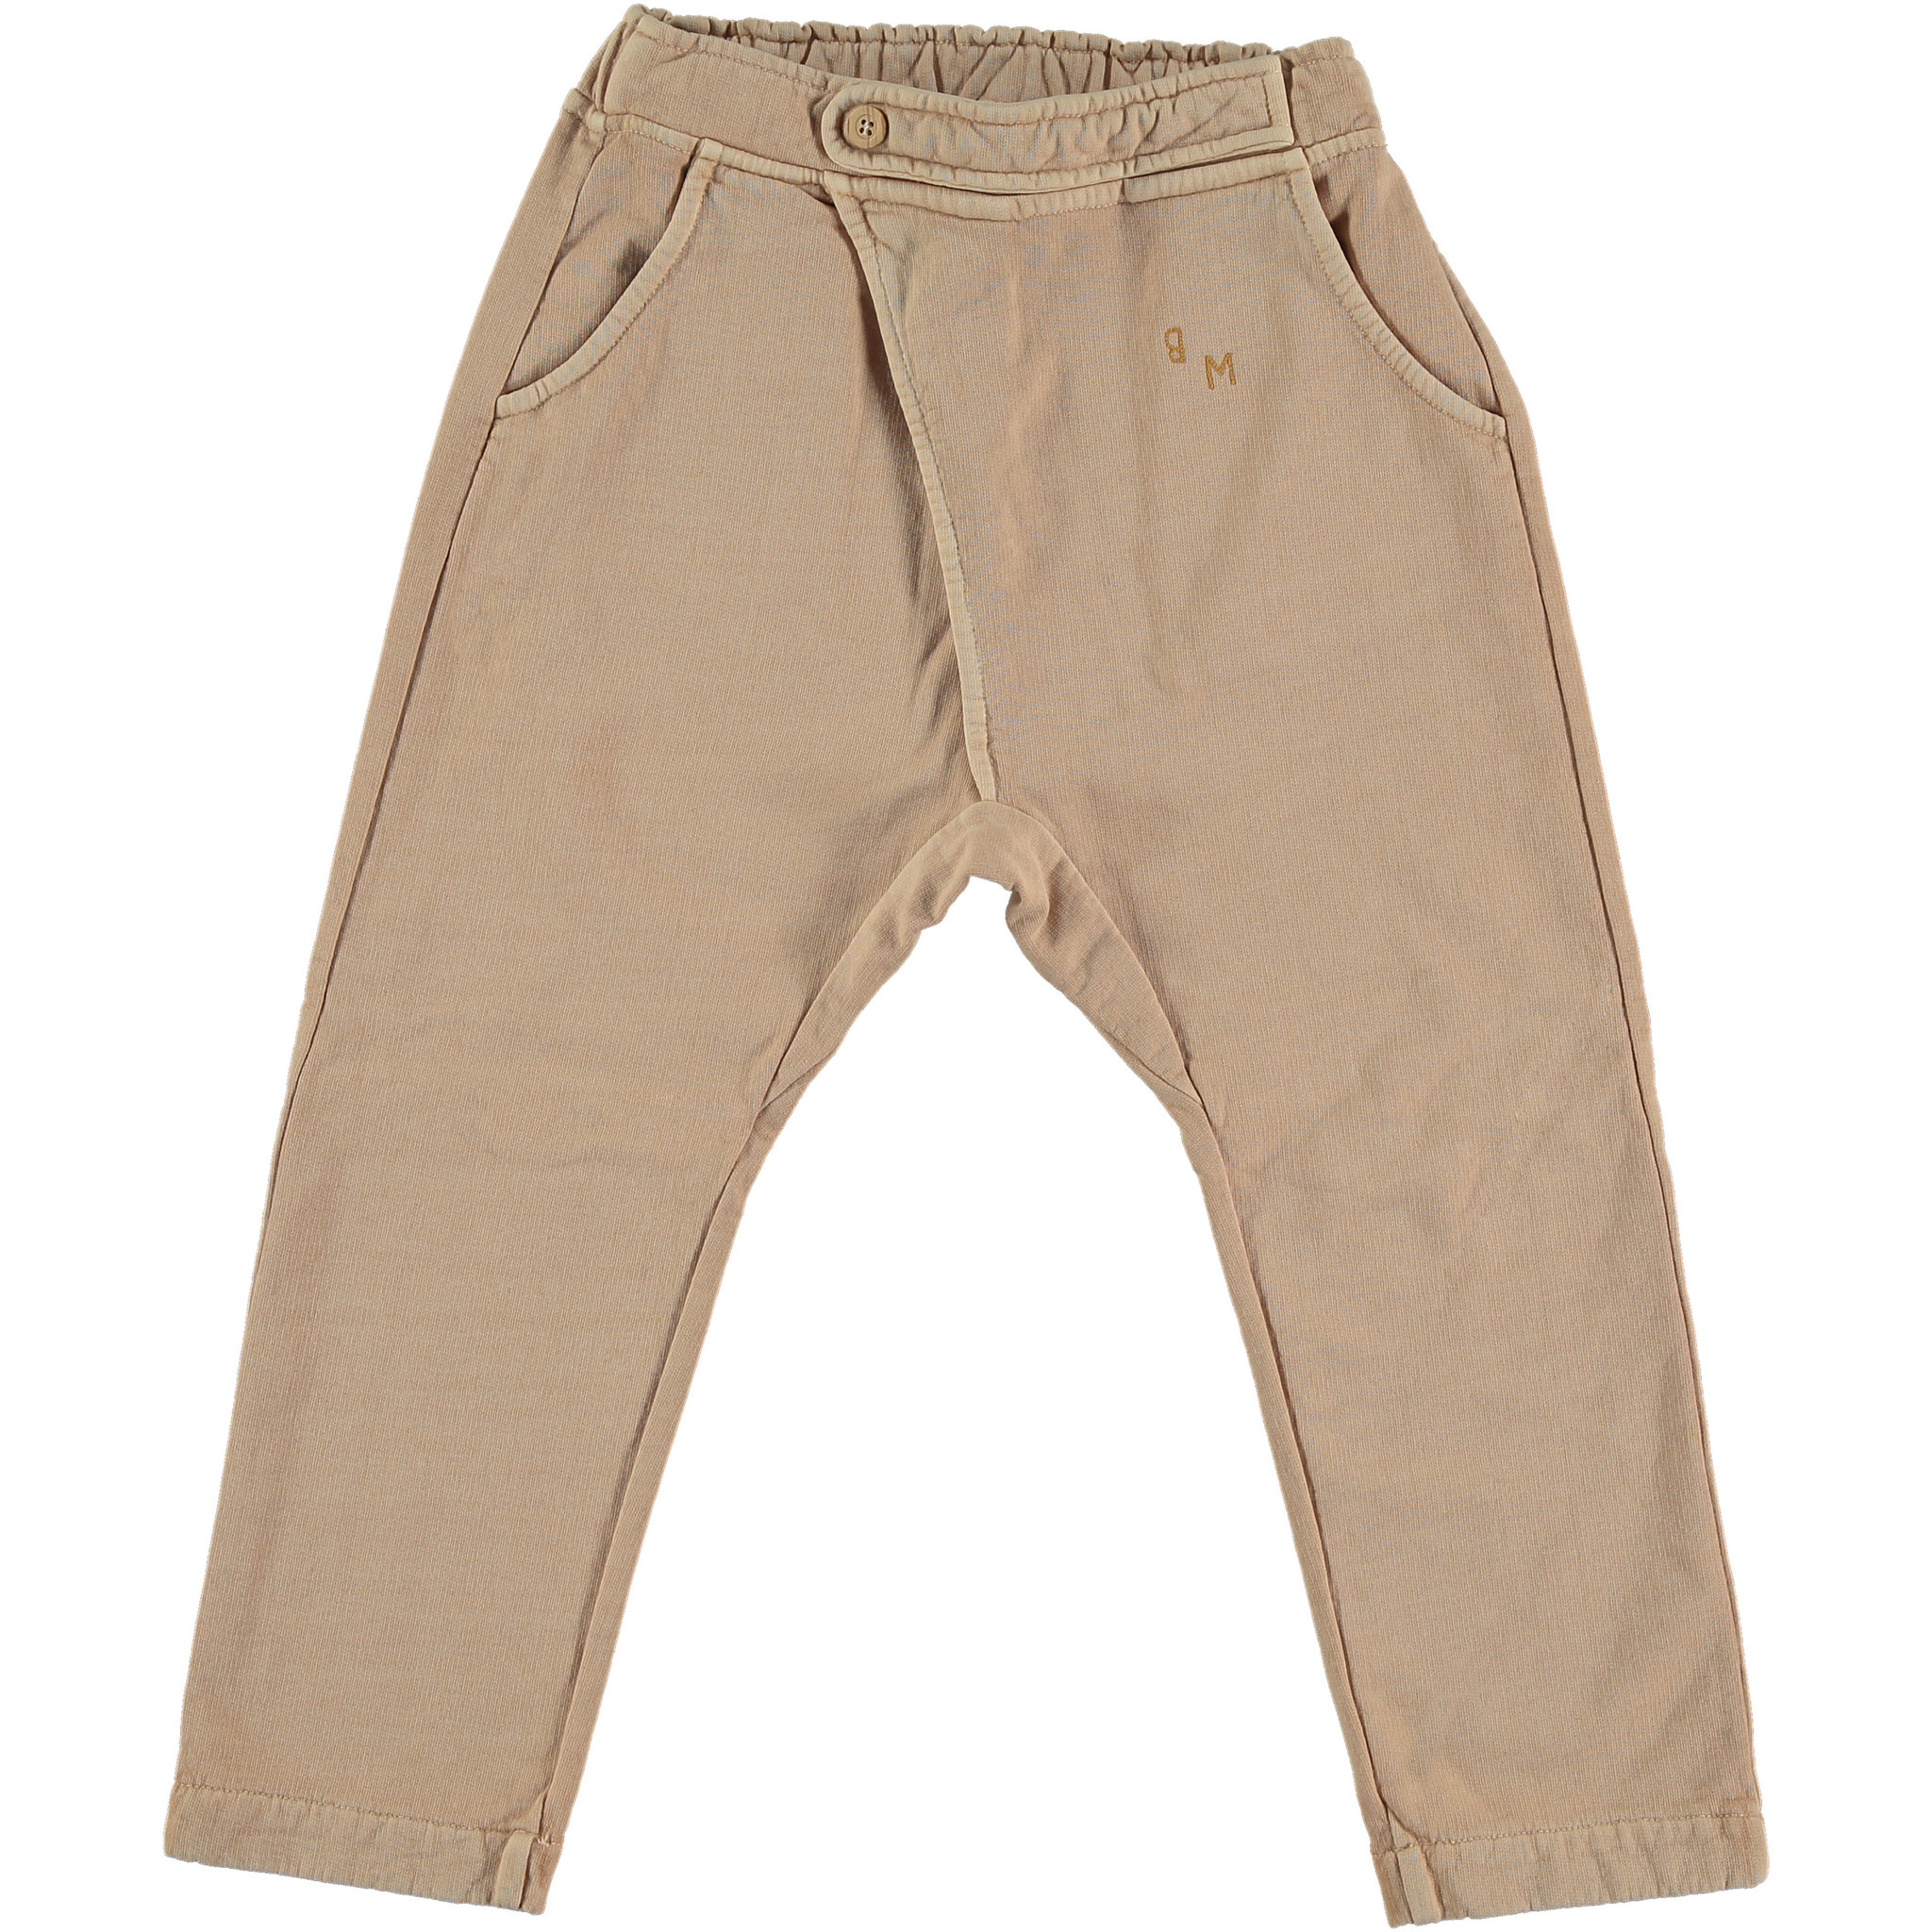 Baggy plain pant - Maple Sugar-1